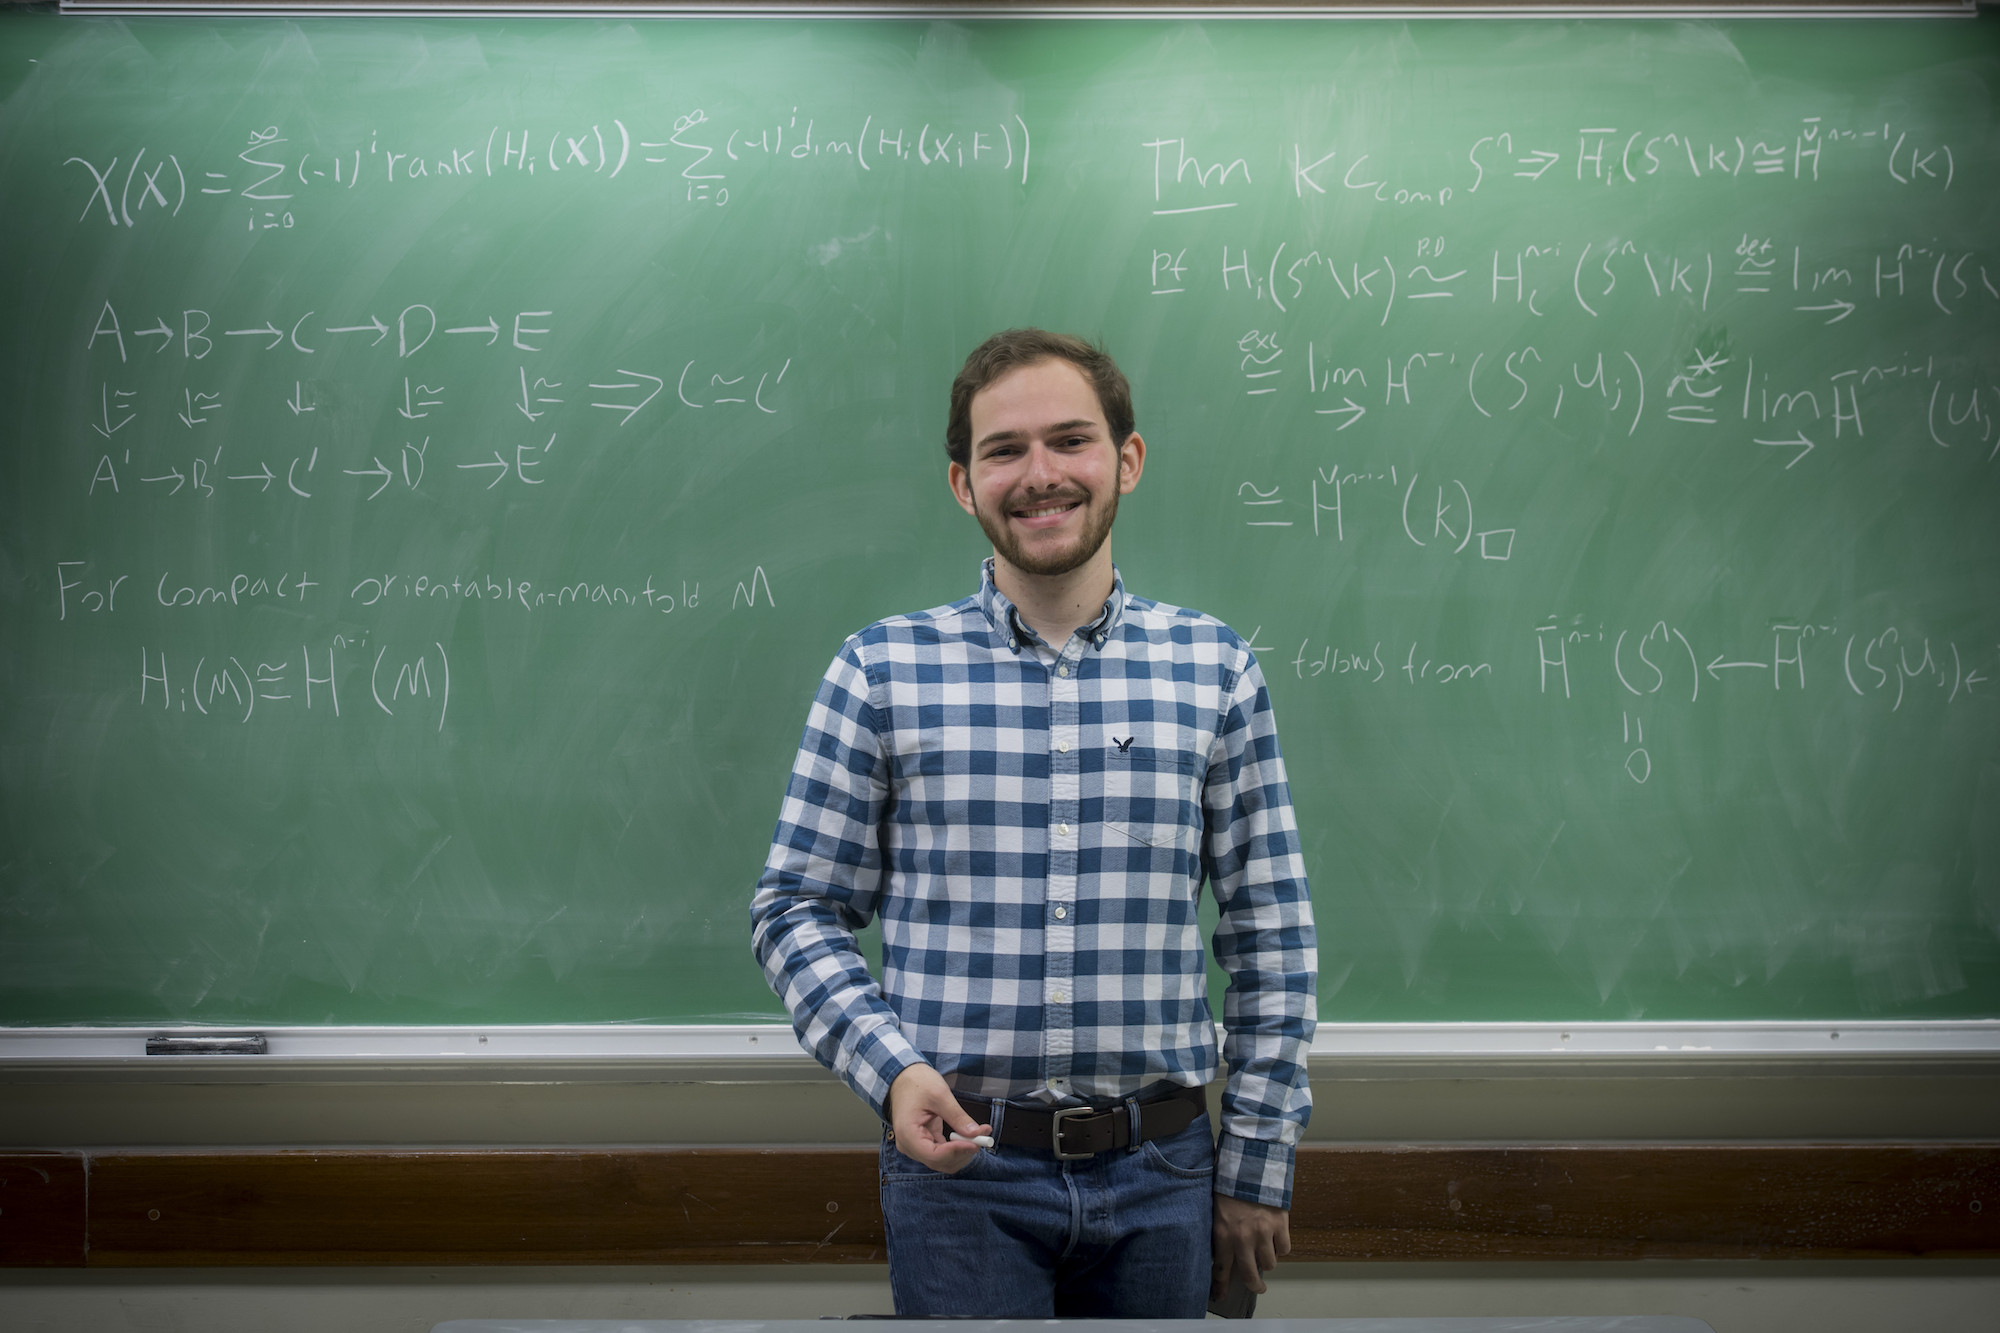 young man standing in front of green chalkboard with math equations